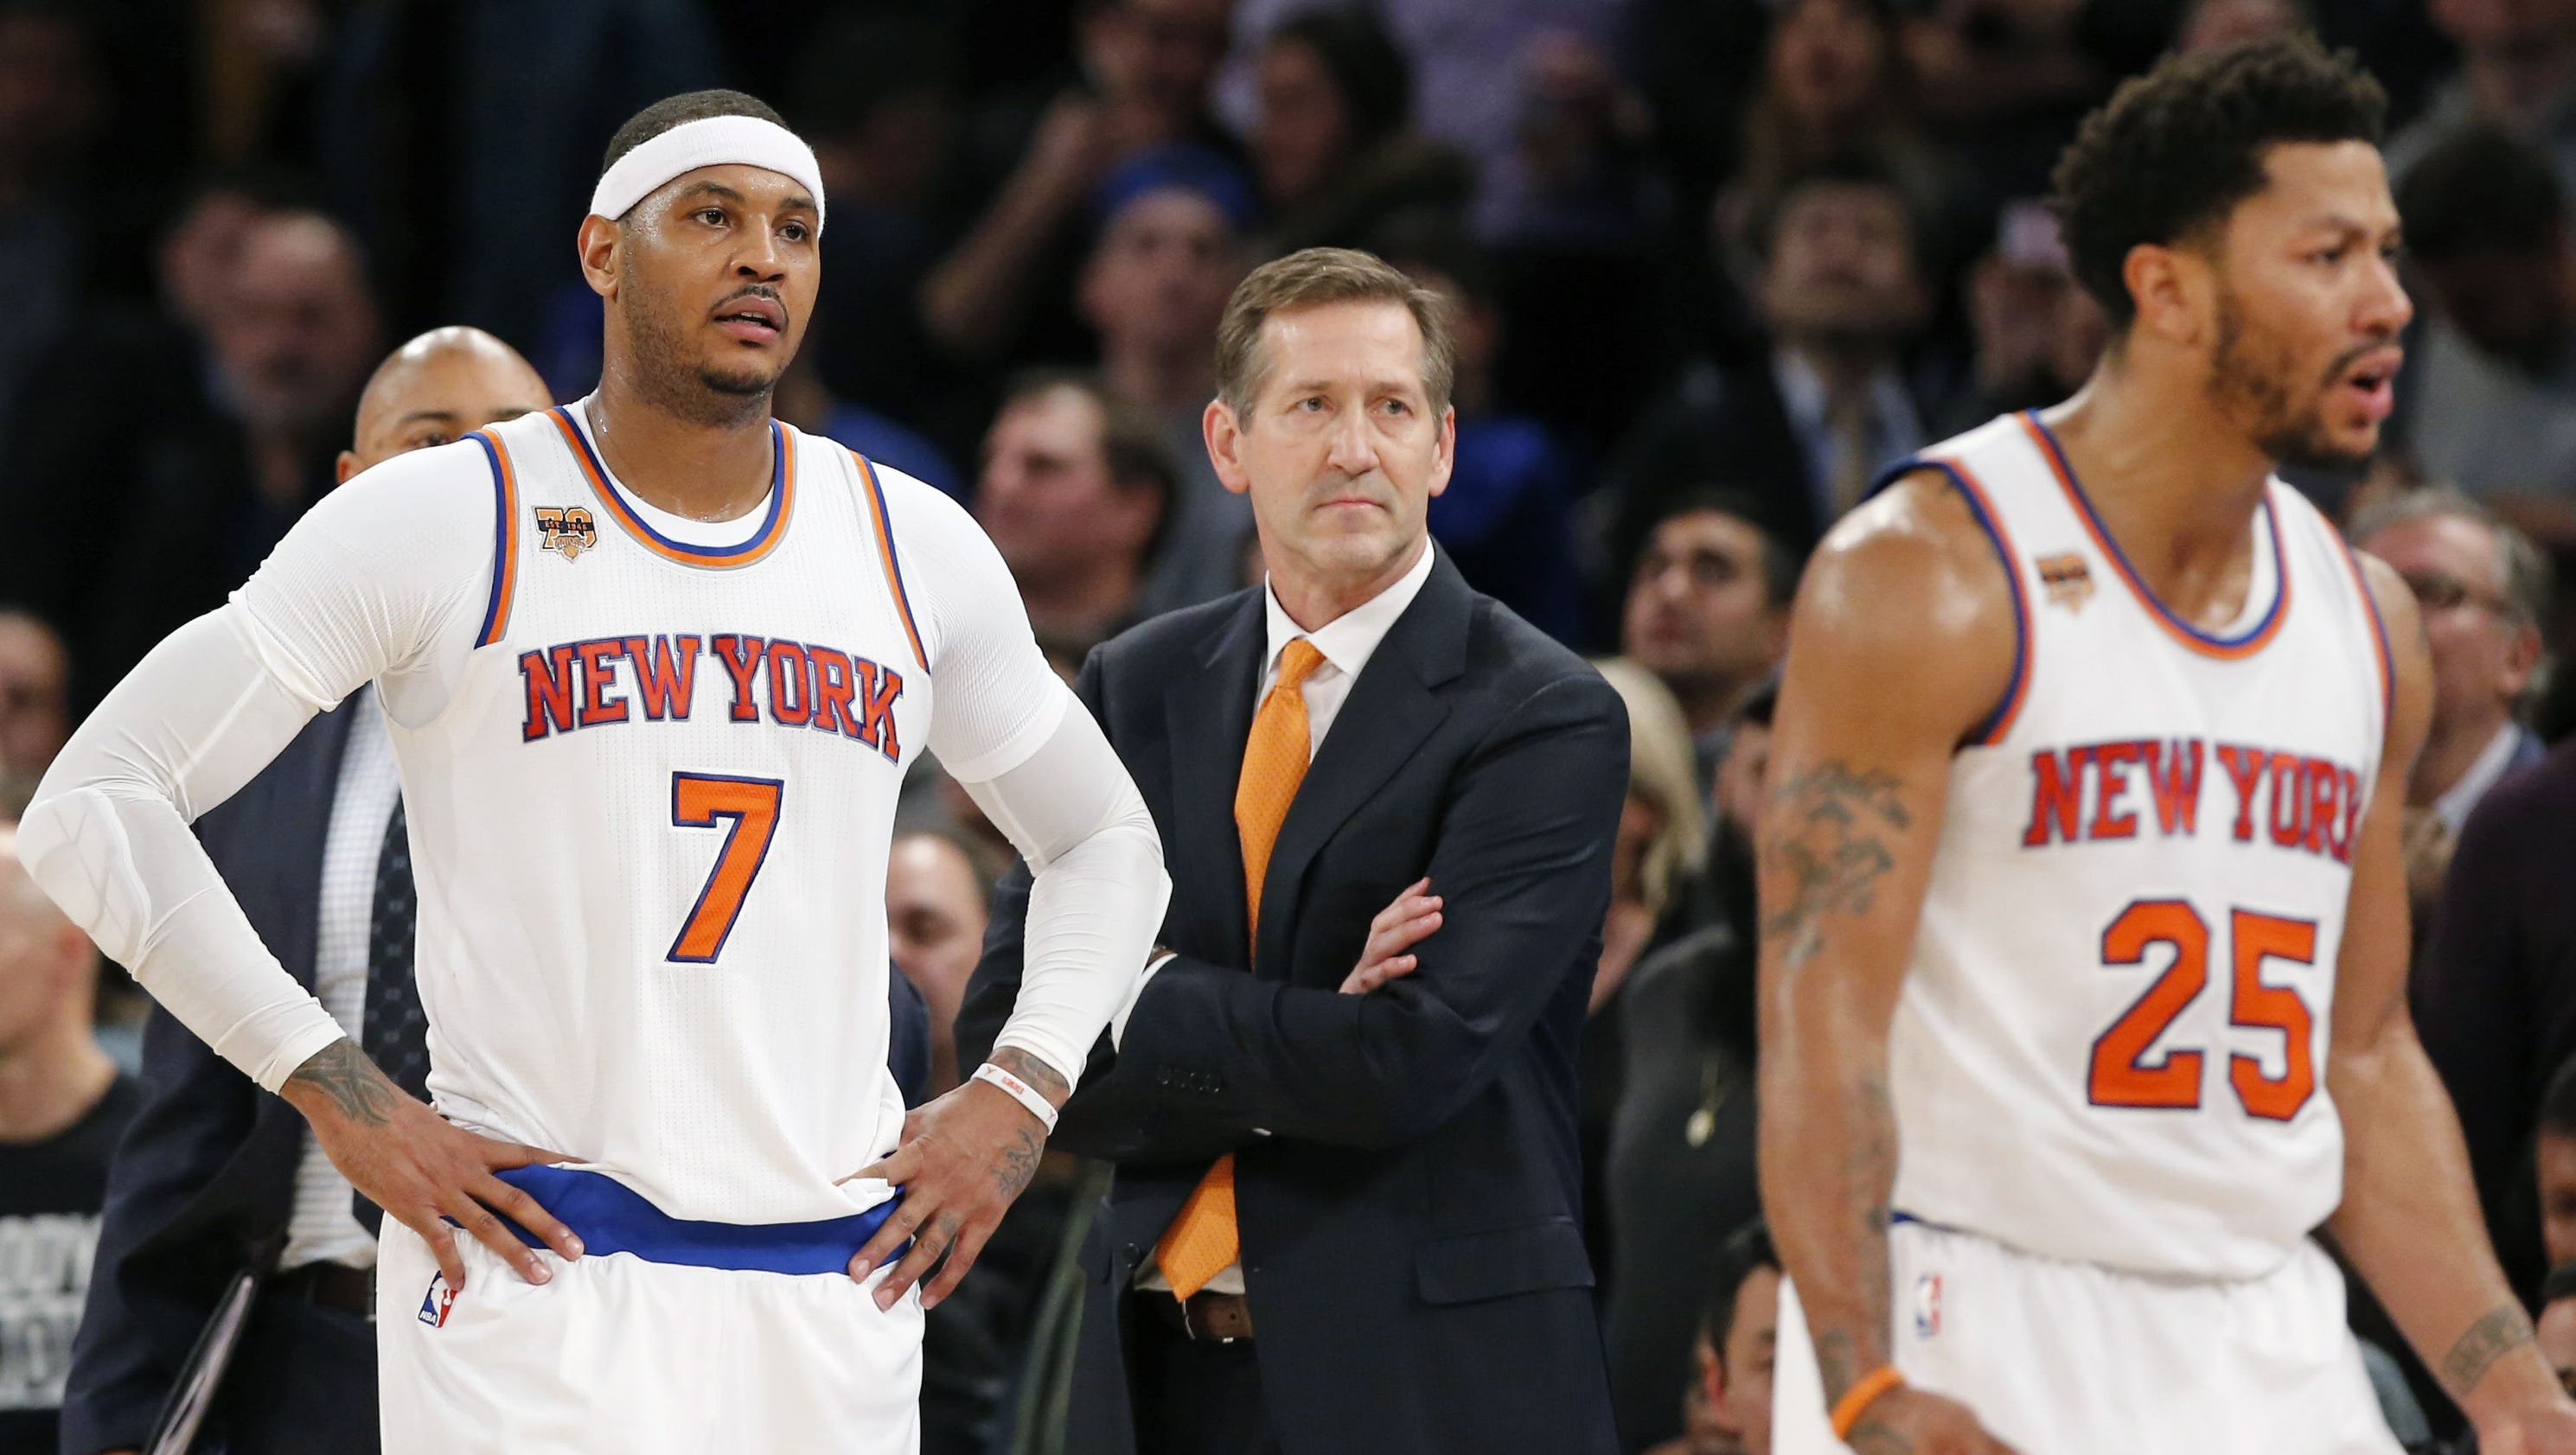 The highs and mostly lows of the Knicks season